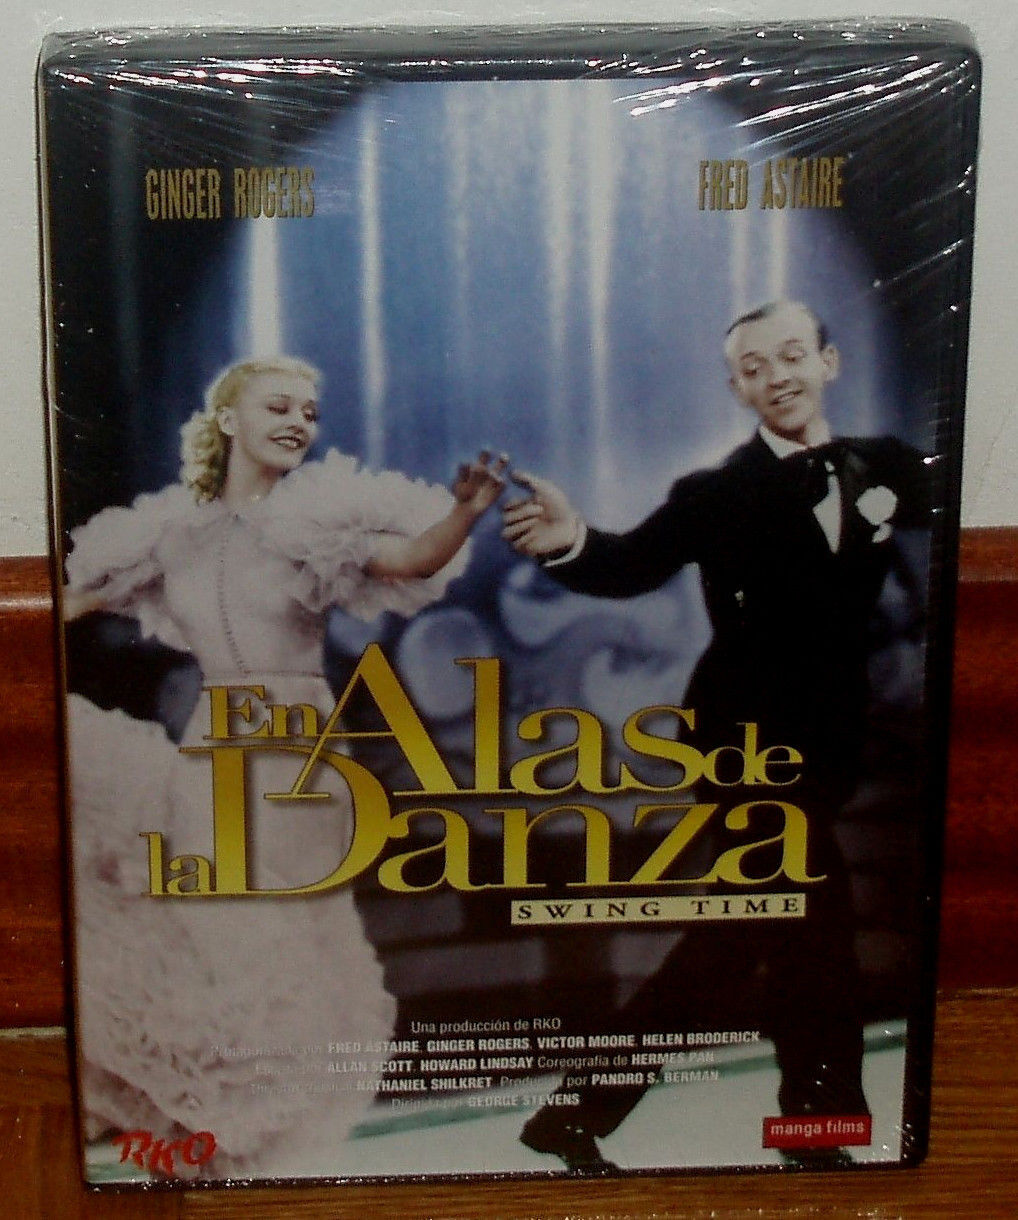 In Wings Of Dance Dvd Fred Astaire Ginger Rogers Sleeveless Open For Sale Online Ebay